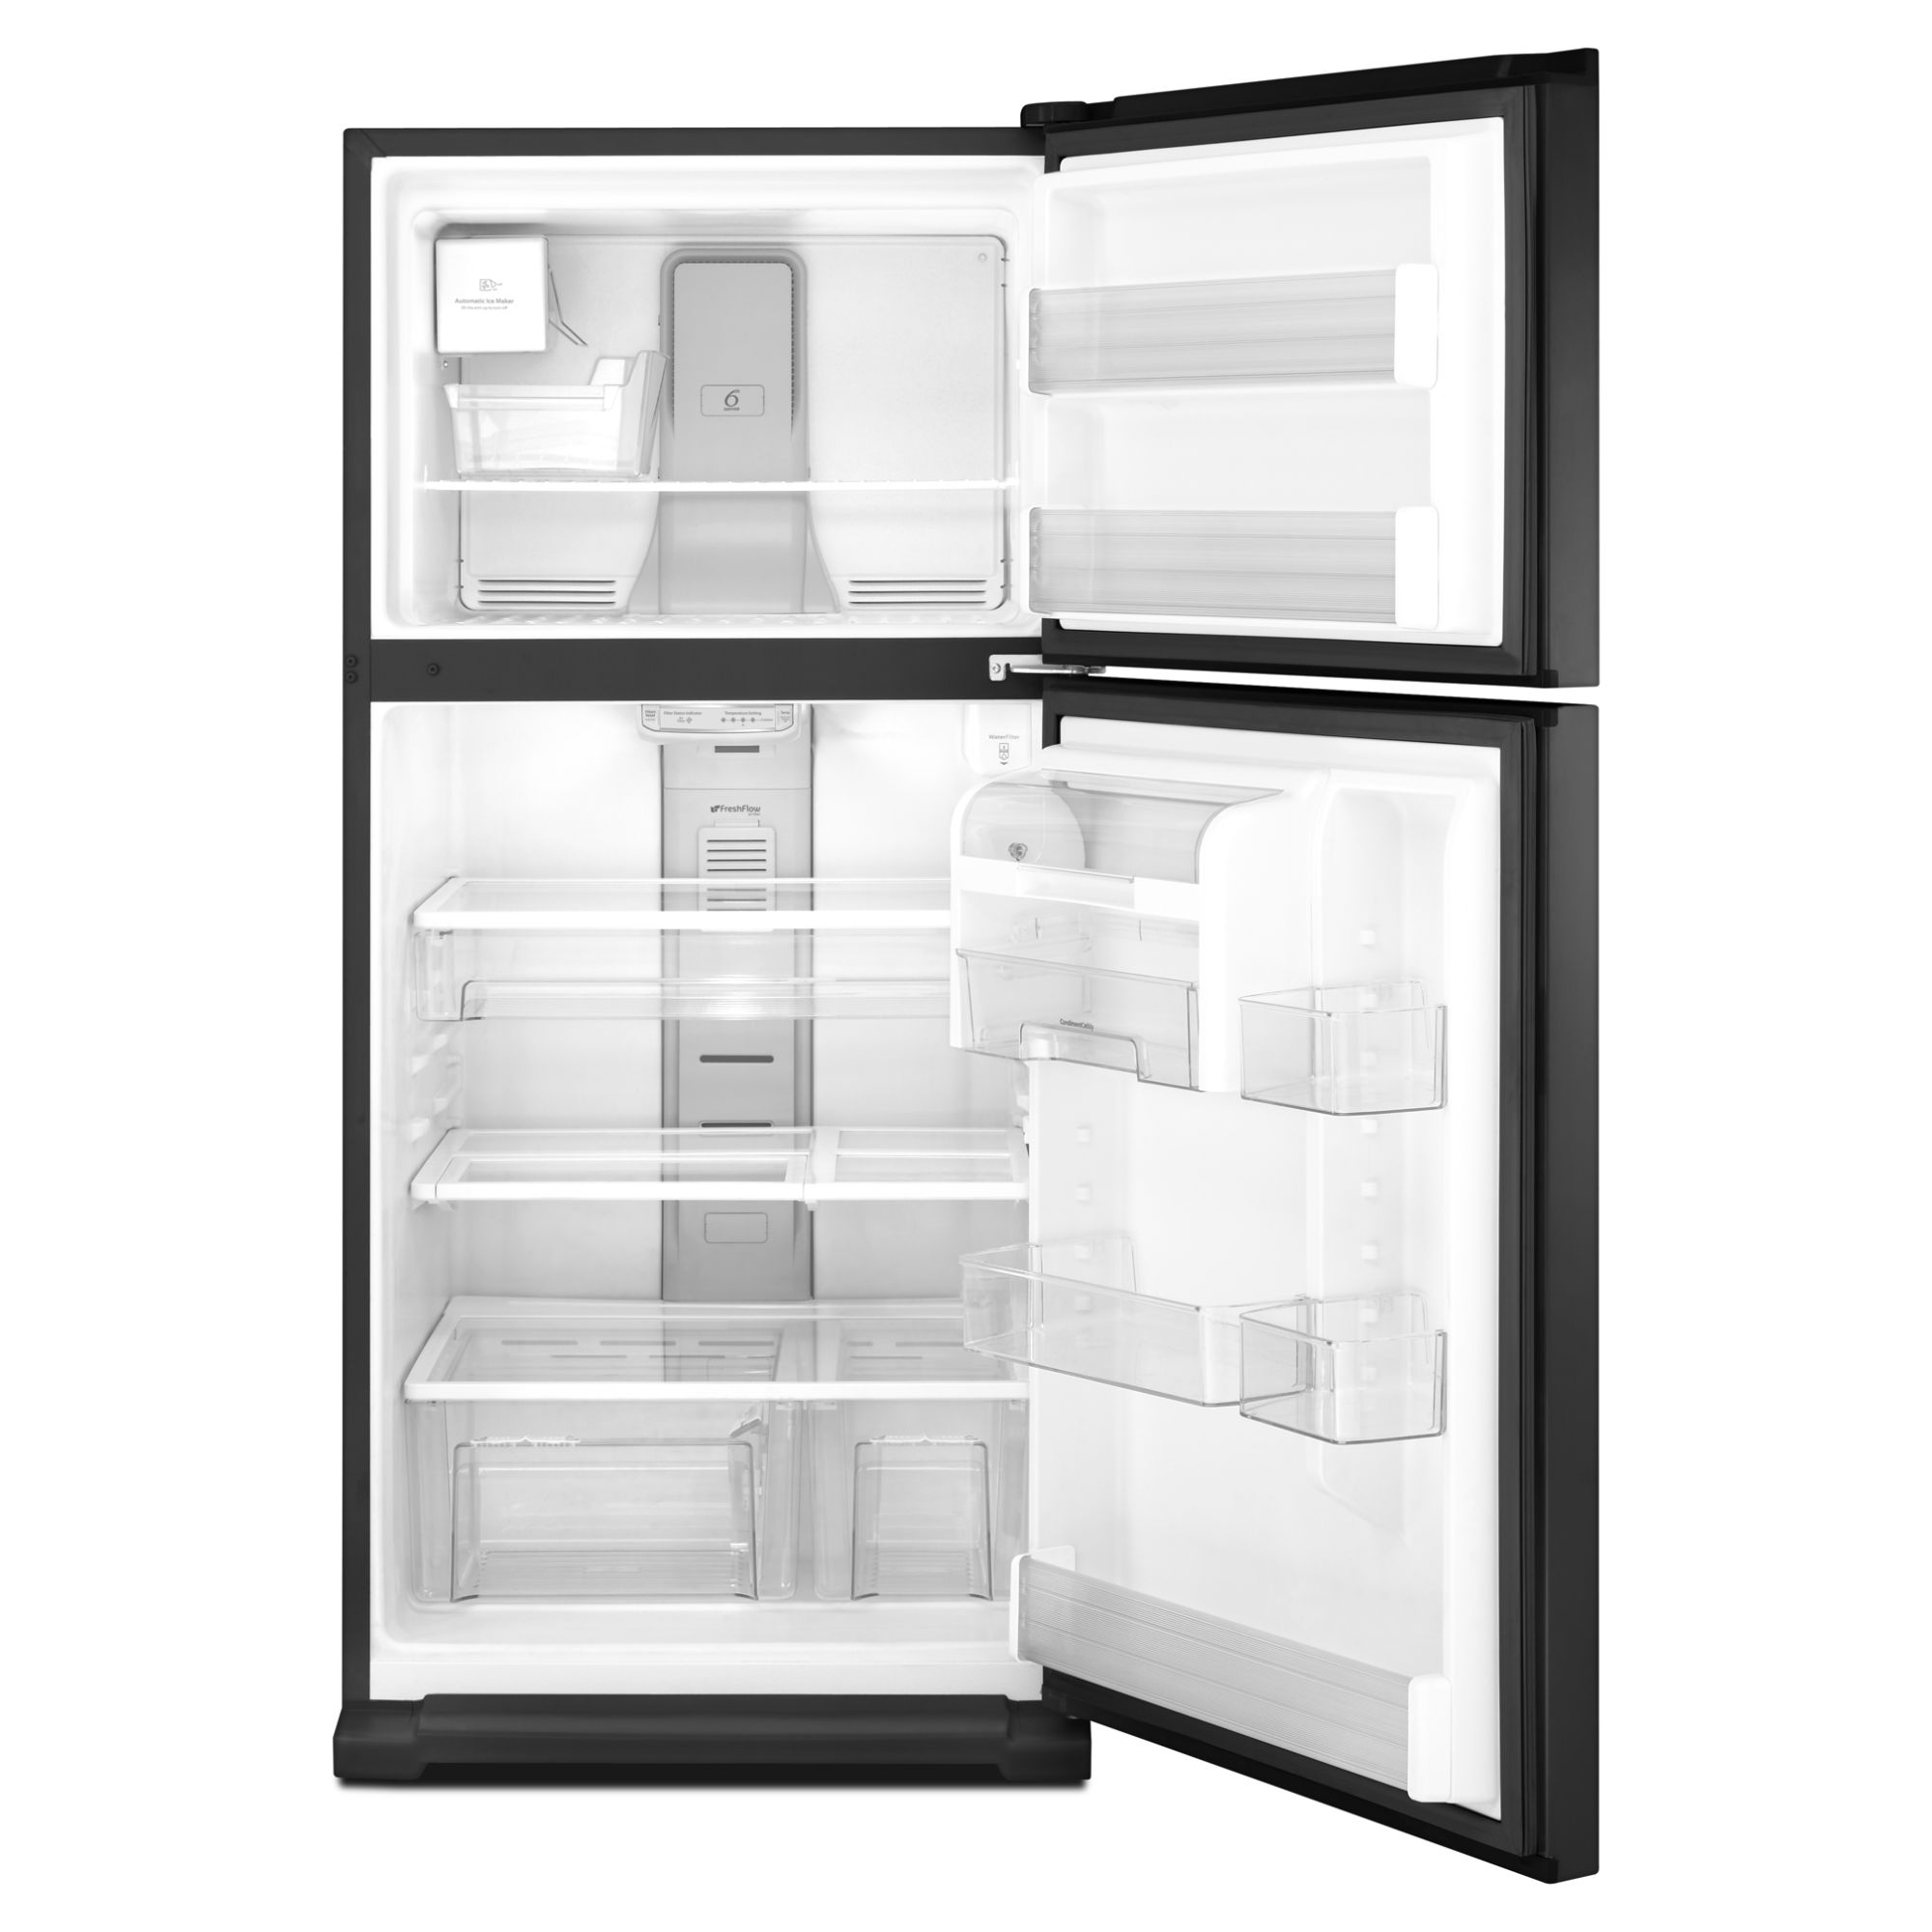 Whirlpool 21.1 cu. ft. Top-Freezer Refrigerator w/ CEE Tier 3 Rating - Black